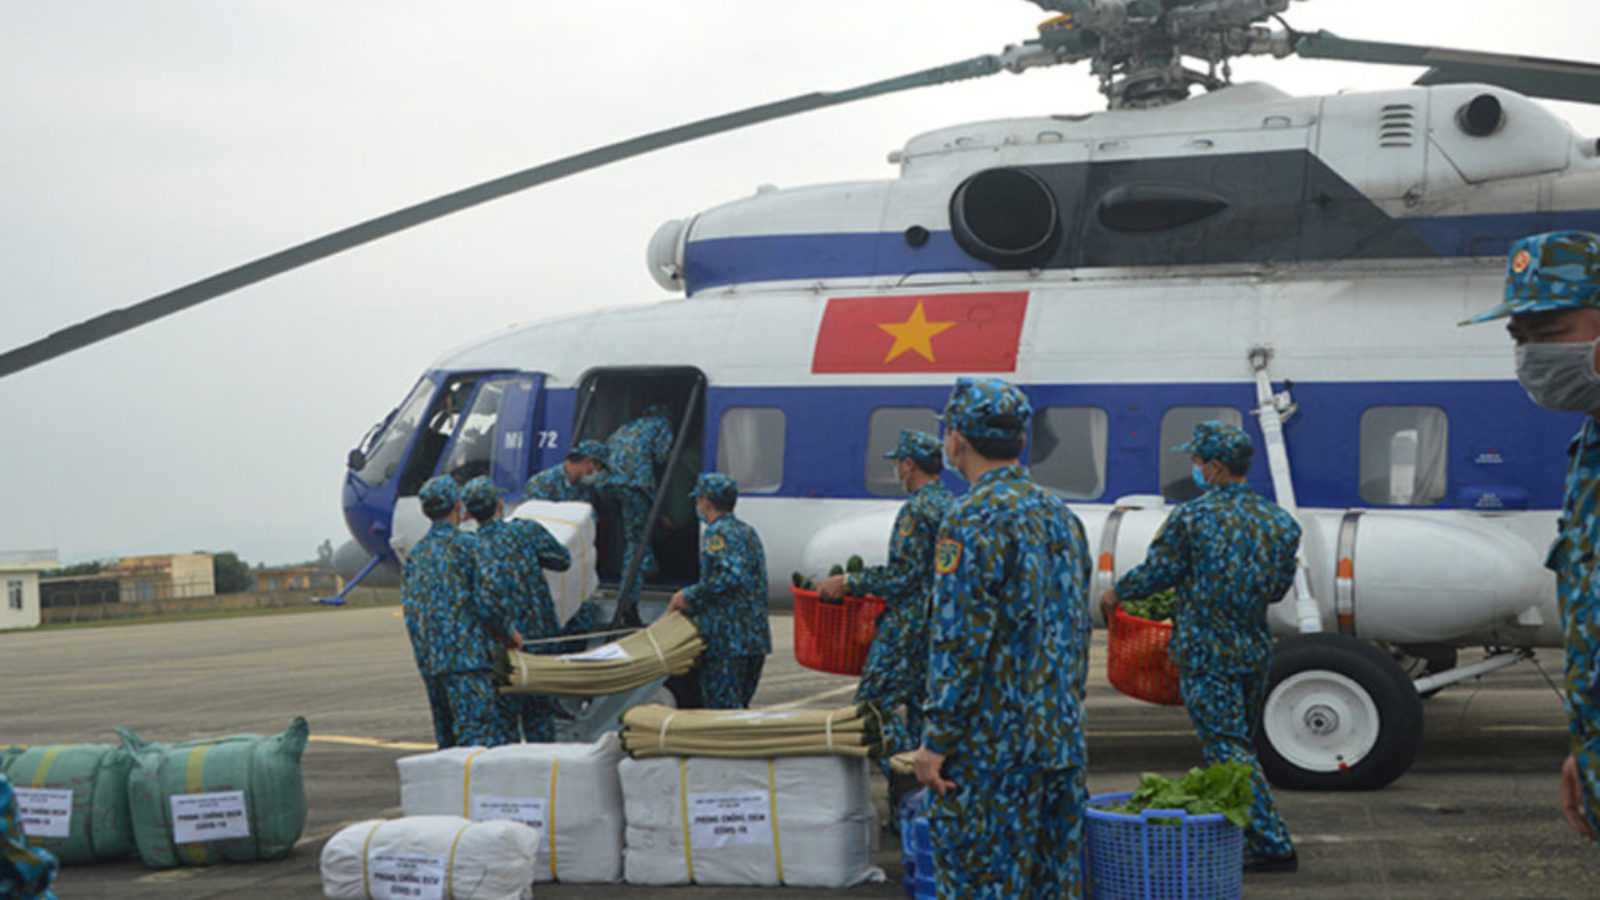 Soldiers in blue camouflage load supplies onto a helicopter with the Vietnamese flag